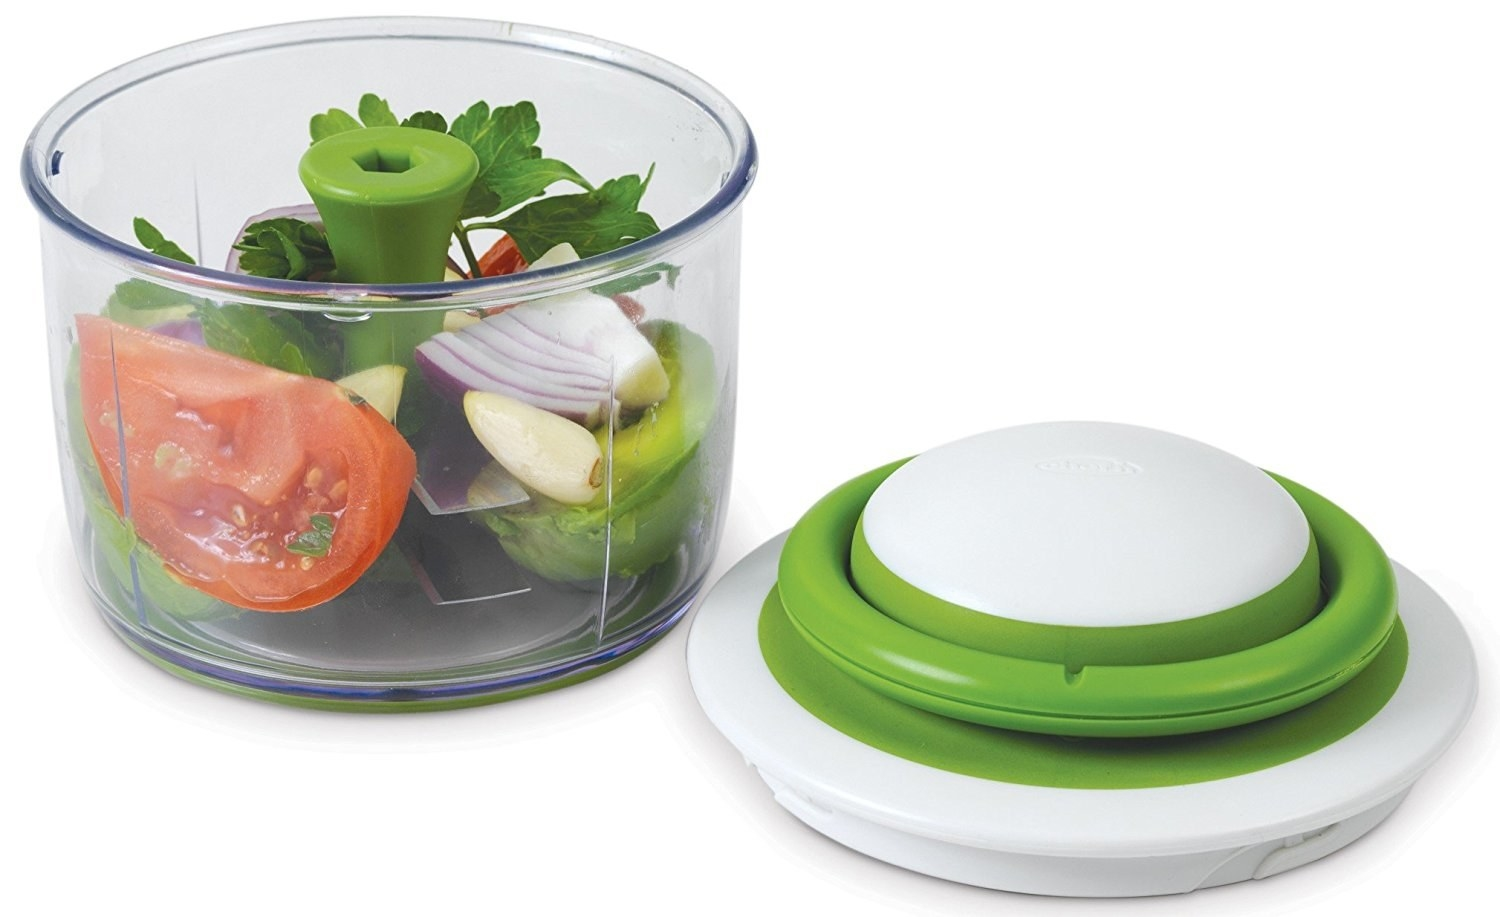 This chopper gives you full control over the consistency — you can get anything from large chunks to a fine mince depending on how many times you pull it. In addition to cutting up veggies for salads, it can make pesto, hummus, salsa, and guacamole. It also comes with a sealing storage lid to keep ingredients fresh in the container. —Derek Spiewak, FacebookGet it from Jet for $24.30.